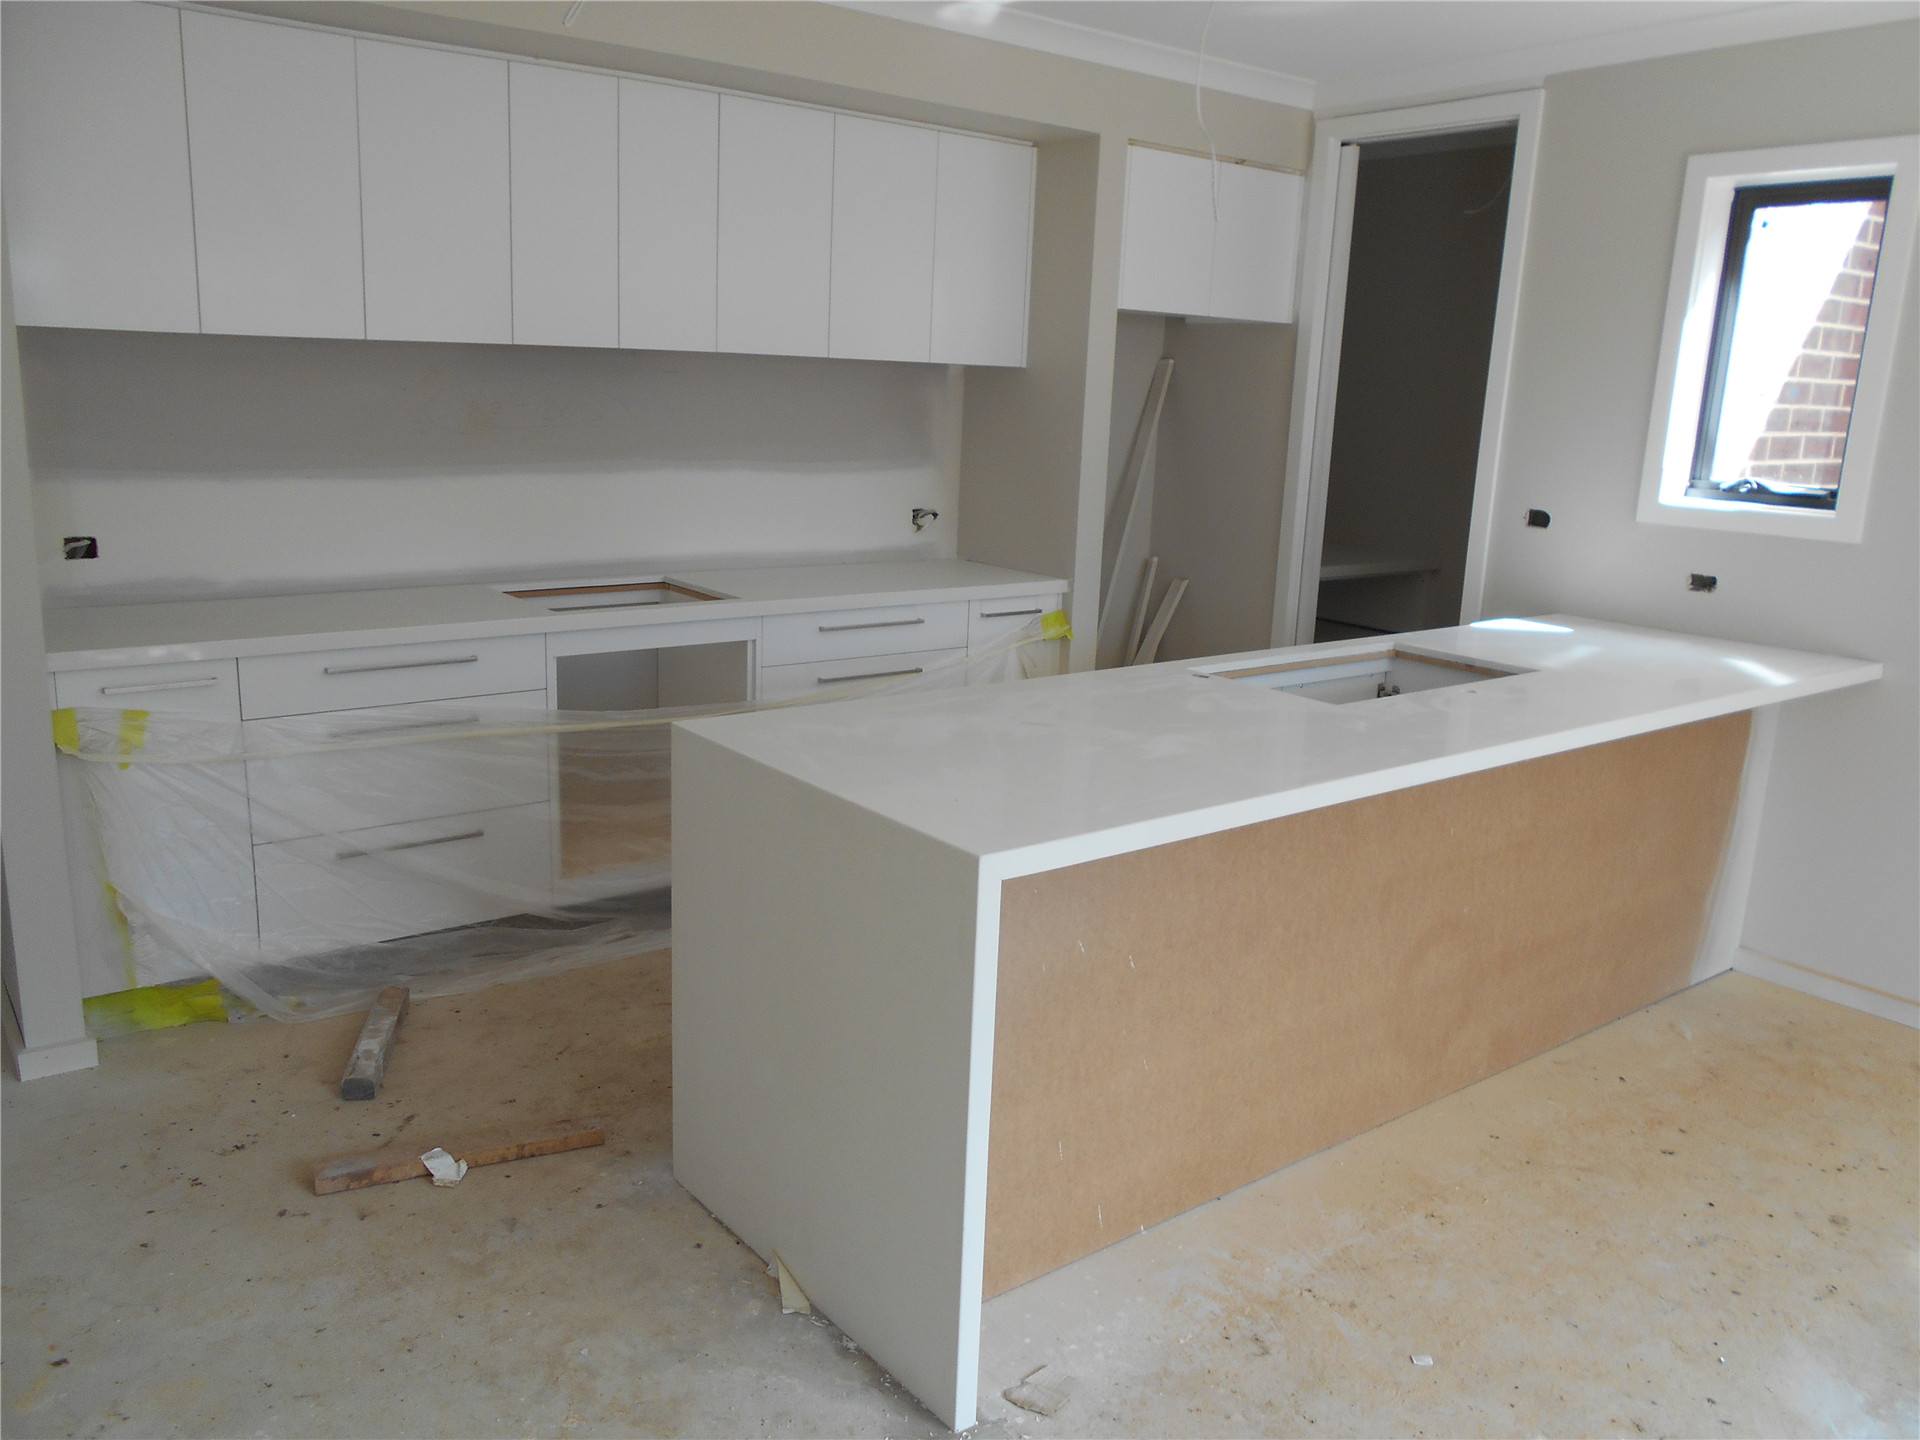 cheap stone benchtops Melbourne project image 11